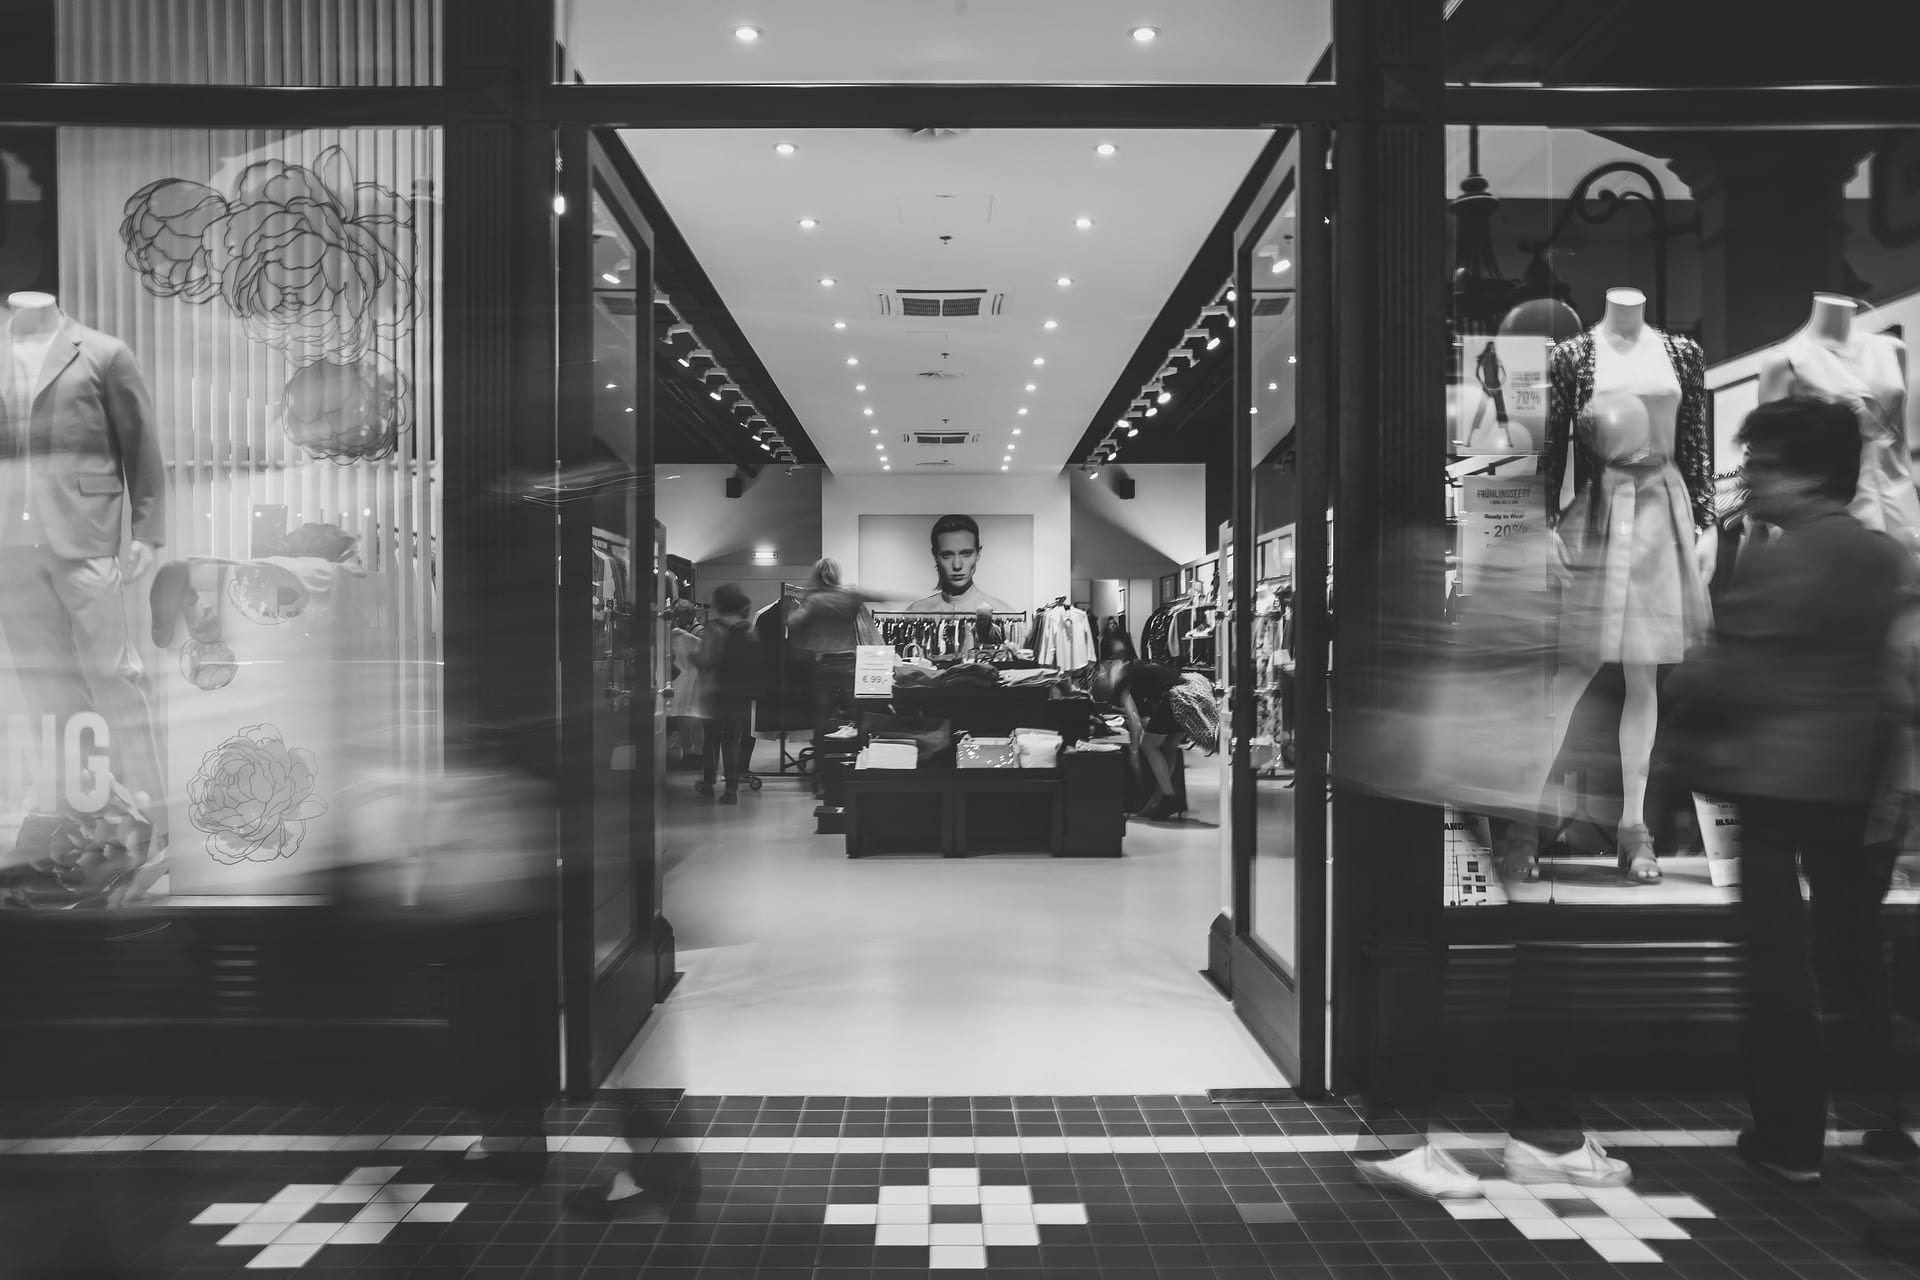 Storefront in black and white with shoppers